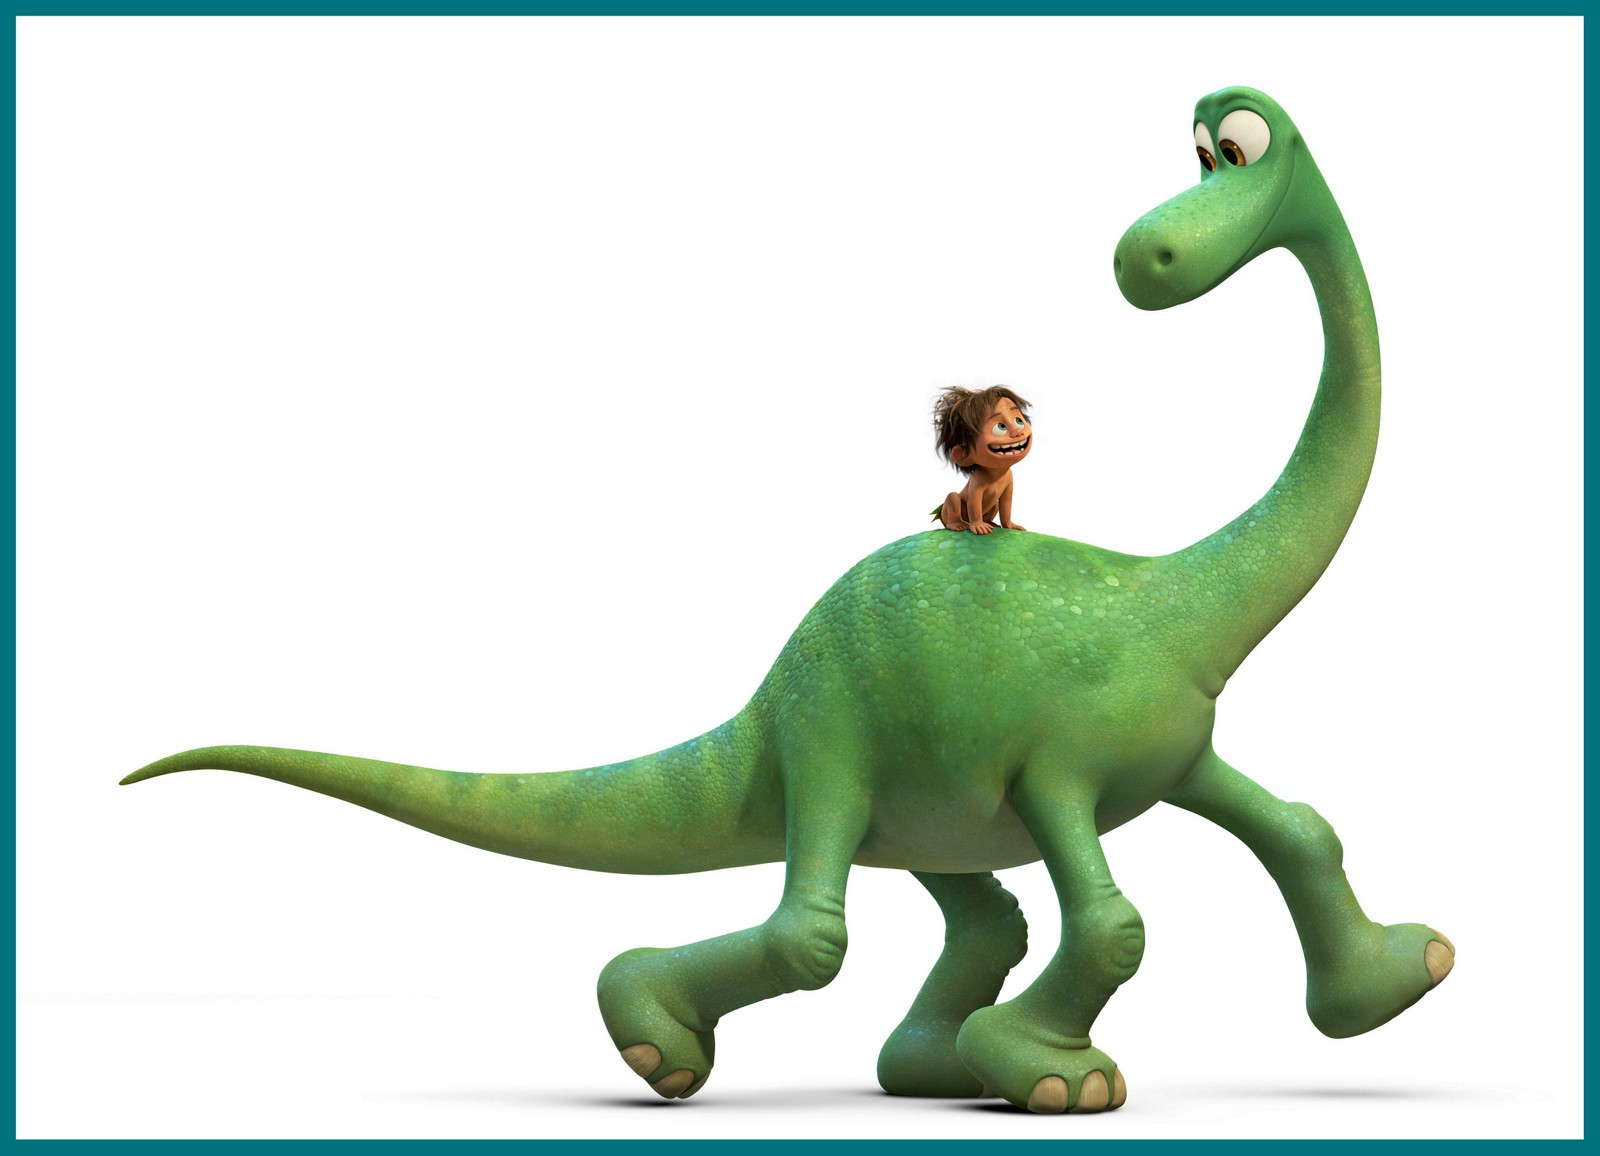 dino slaapgerief (the good dinosaur)